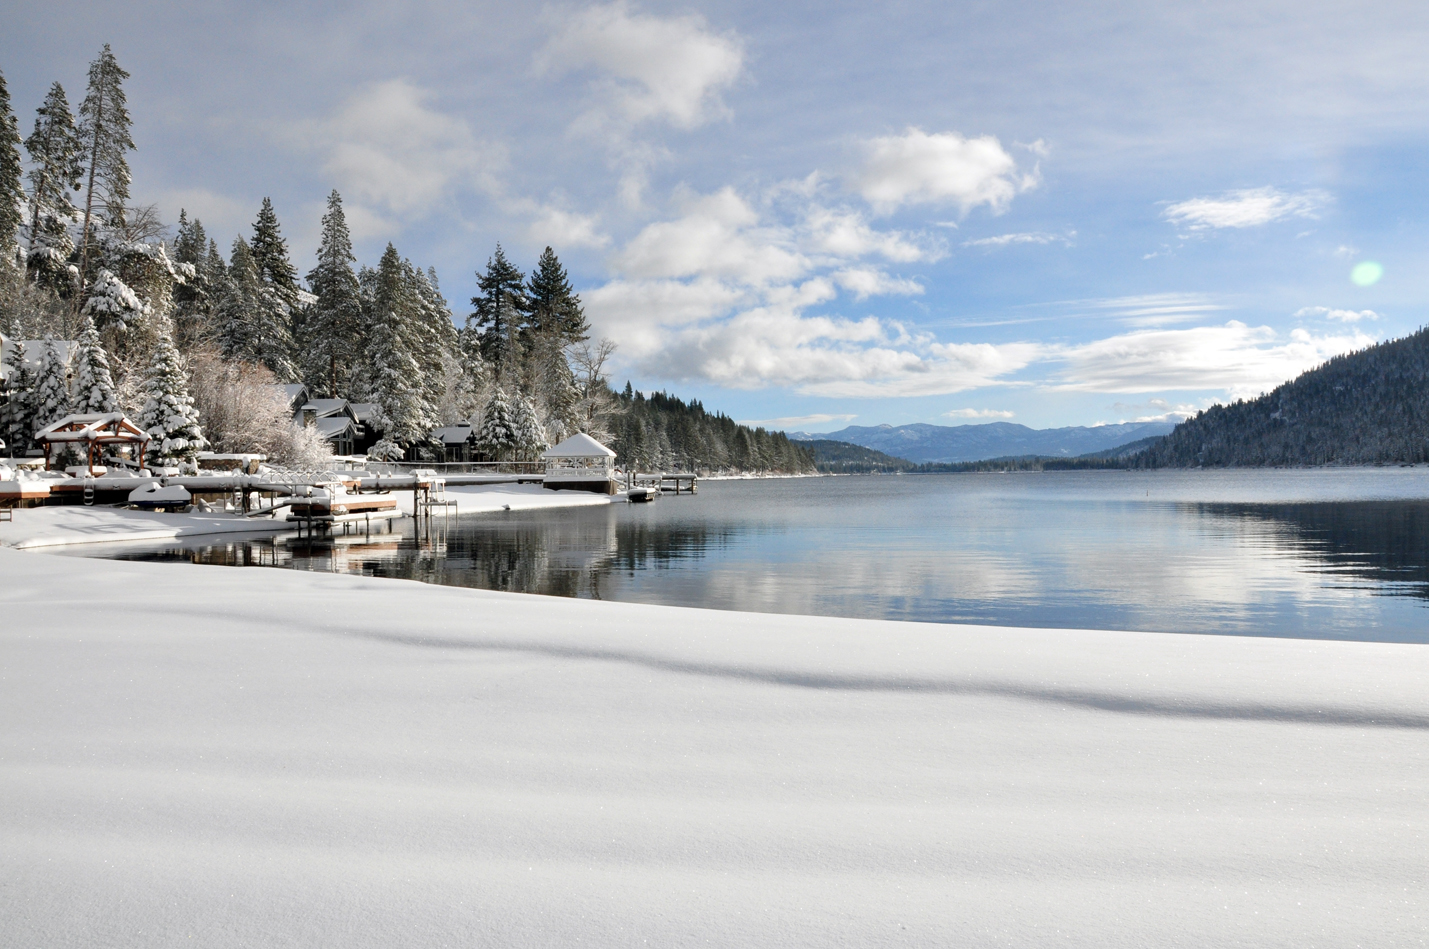 Truckee California: Hikes, Lakes and Outdoor Adventure